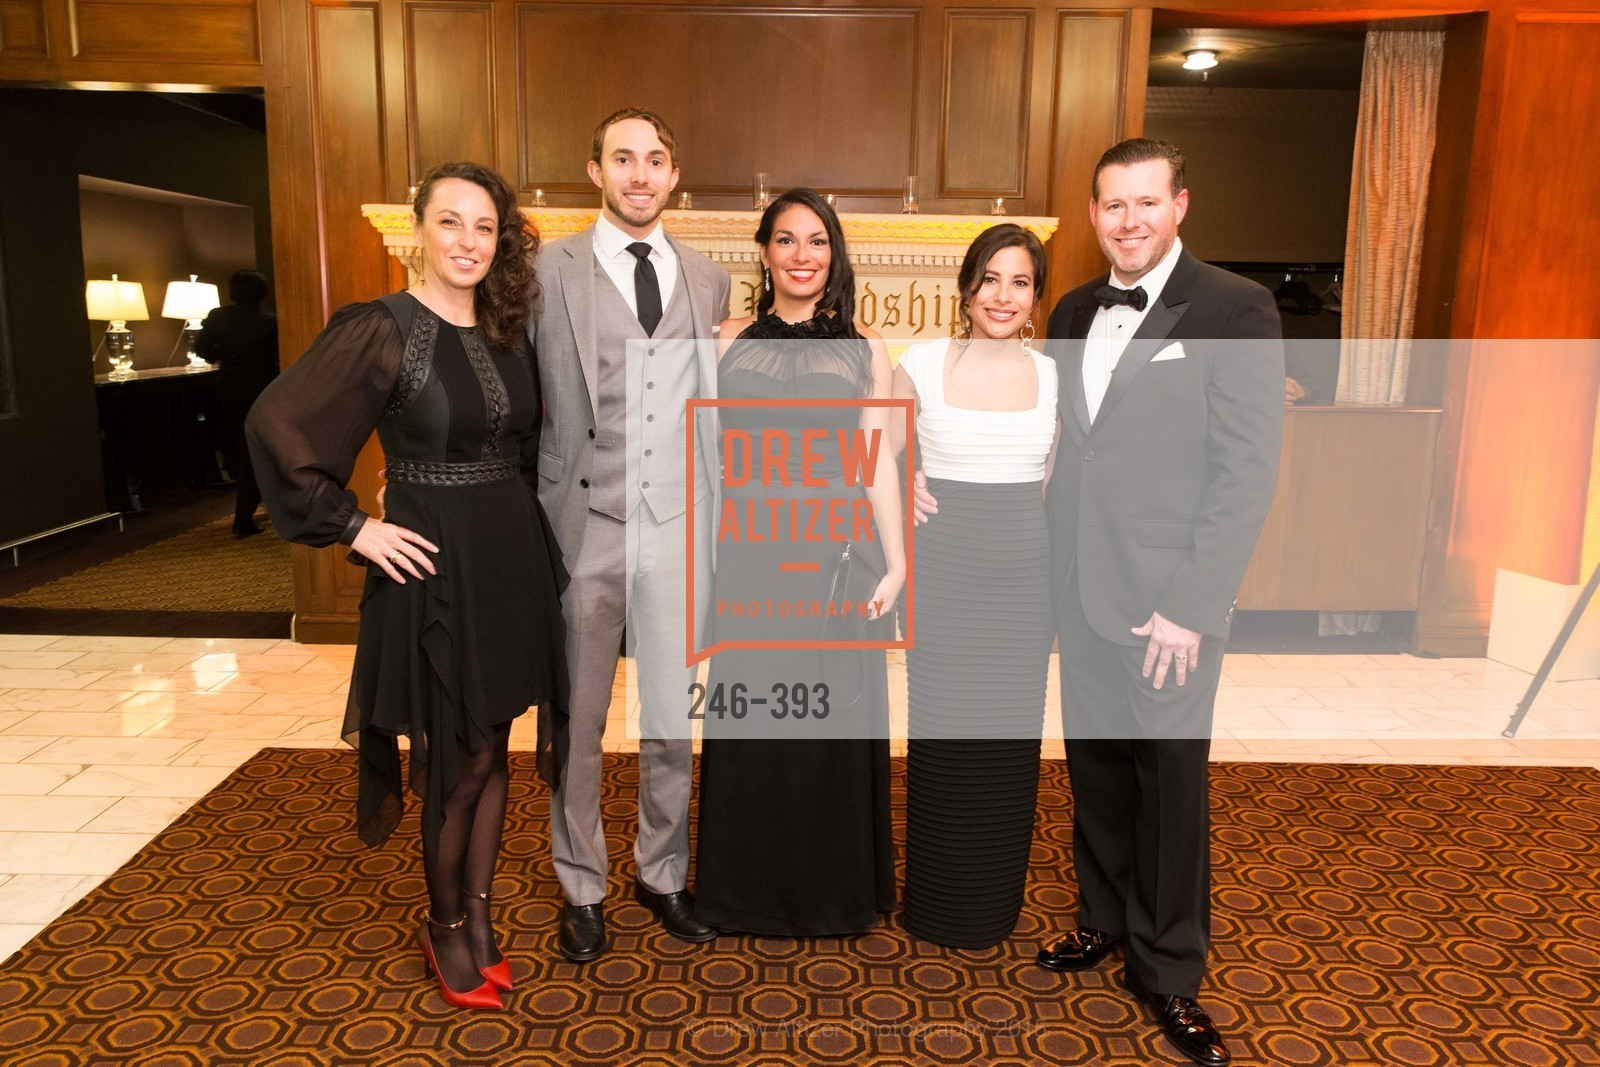 Stacey Harte, Chris Cunnigham, Anais Challe, Natalie Wade, Aza Olival, San Francisco Performances' 36th Season Gala, Merchants Exchange Building, Julia Morgan Ballroom. 465 California St, San Francisco, CA 94104, October 16th, 2015,Drew Altizer, Drew Altizer Photography, full-service agency, private events, San Francisco photographer, photographer california